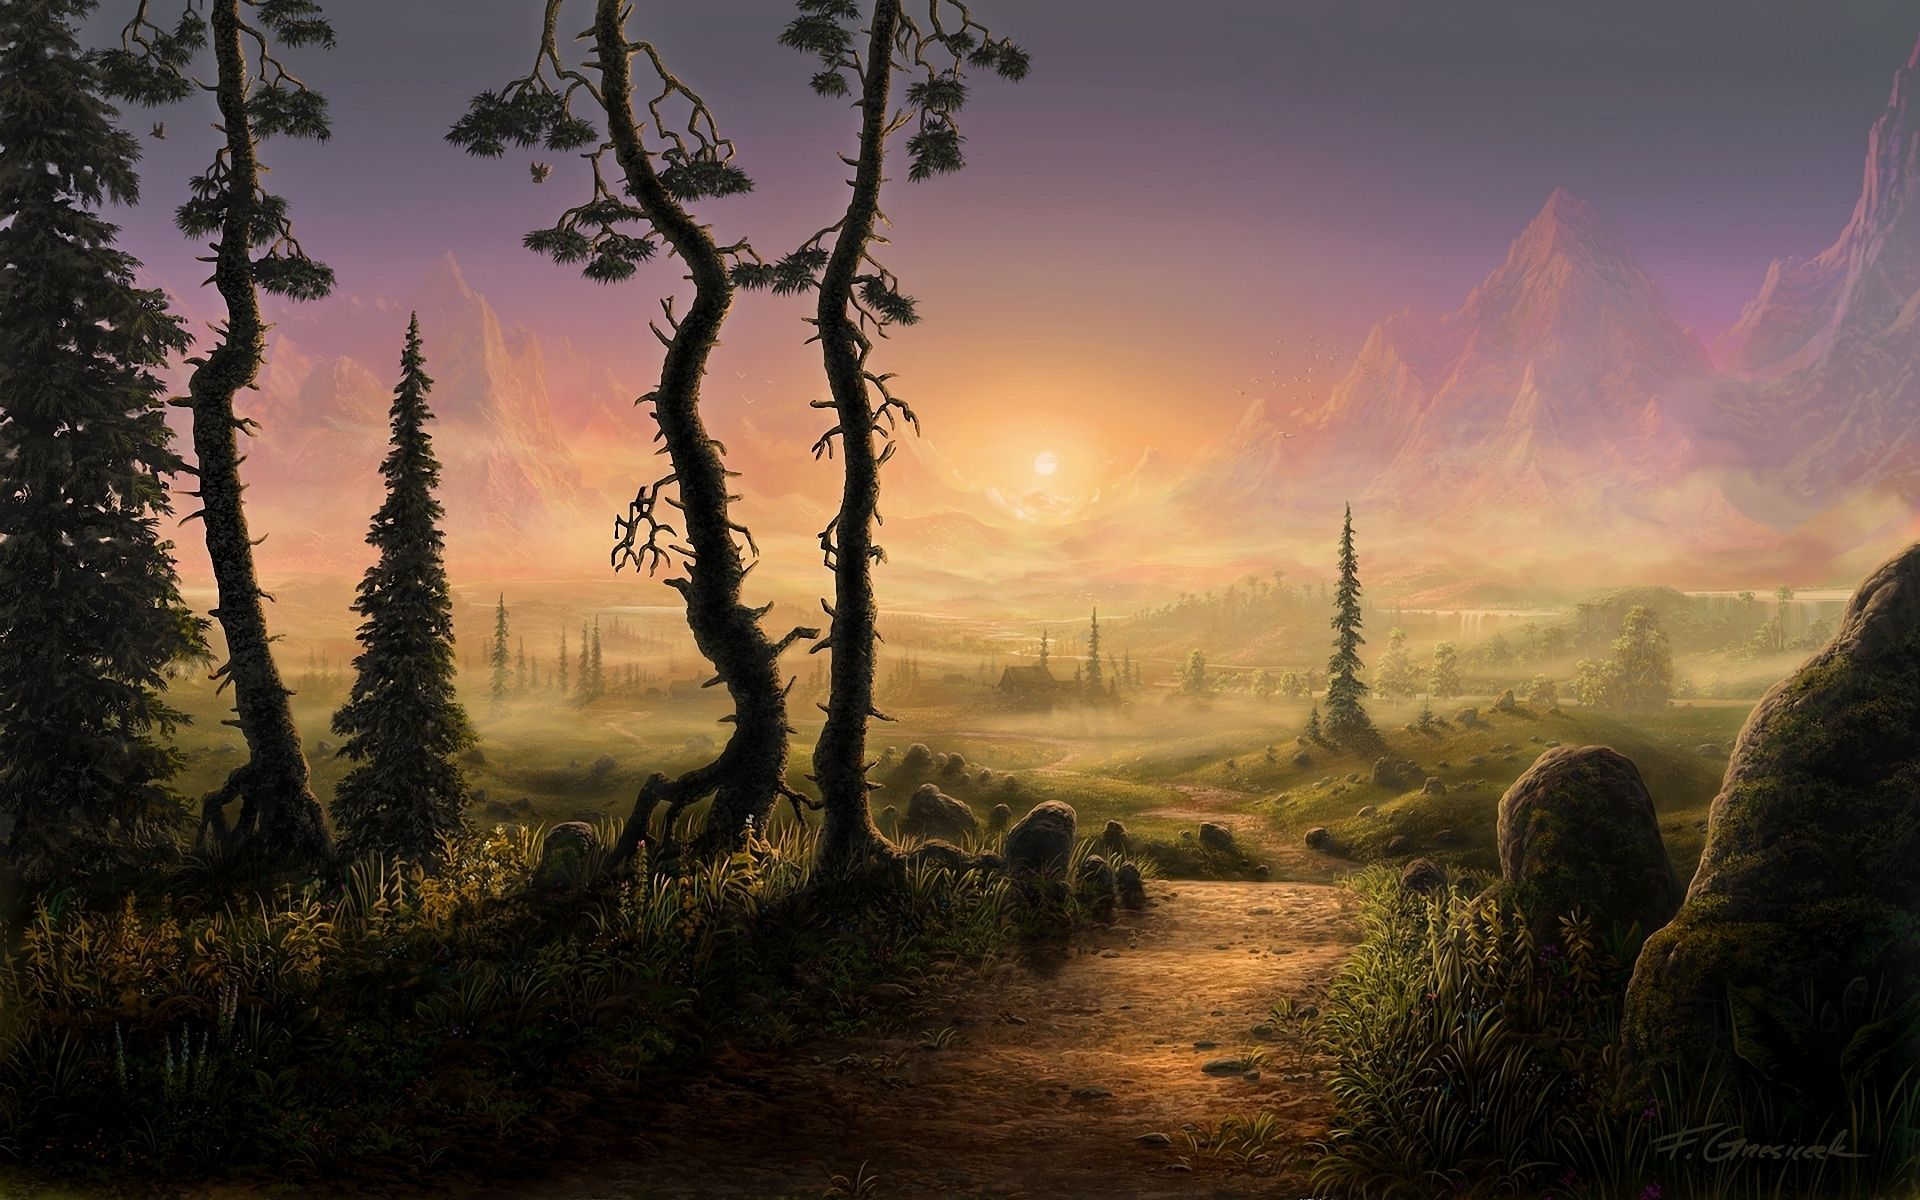 Fantasy Landscape Fantasy Artistic 4k Ultrahd Hd Black Digital Art Tree Wallpaper Fantasy Landscape Landscape Wallpaper Landscape